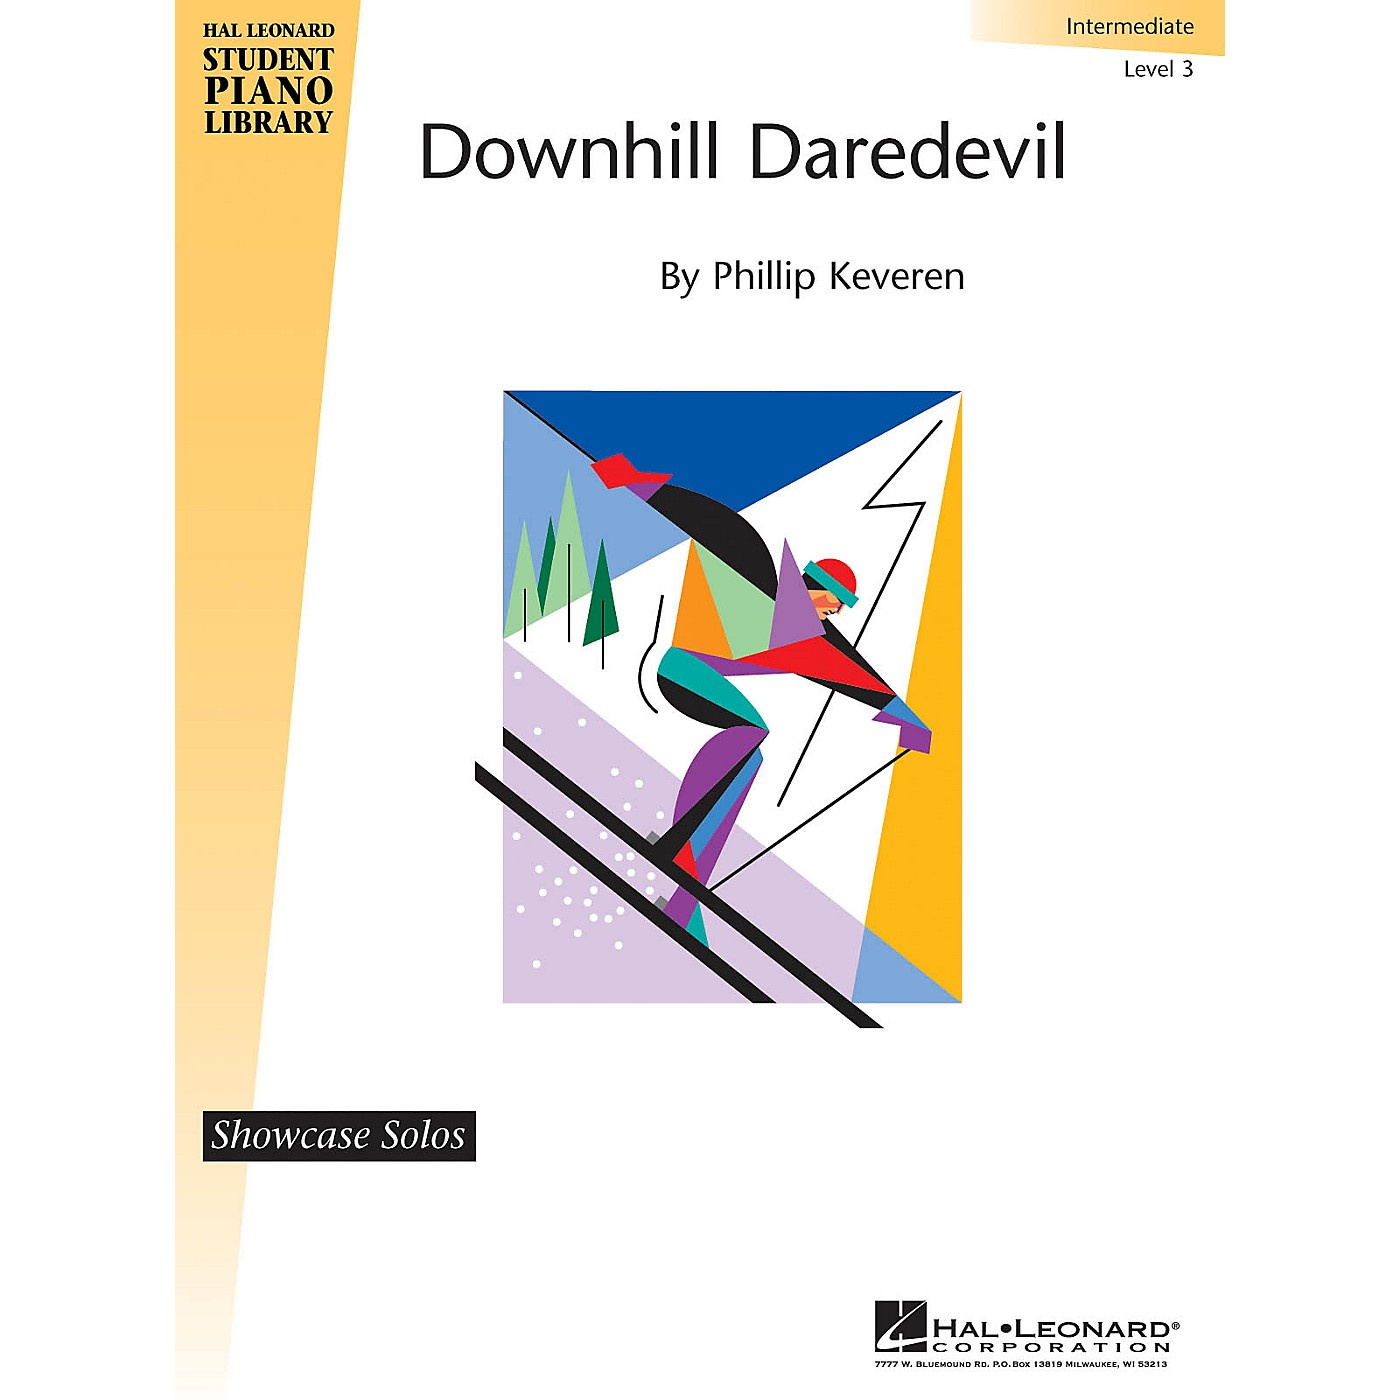 Hal Leonard Downhill Daredevil Piano Library Series by Phillip Keveren (Level Late Elem) thumbnail